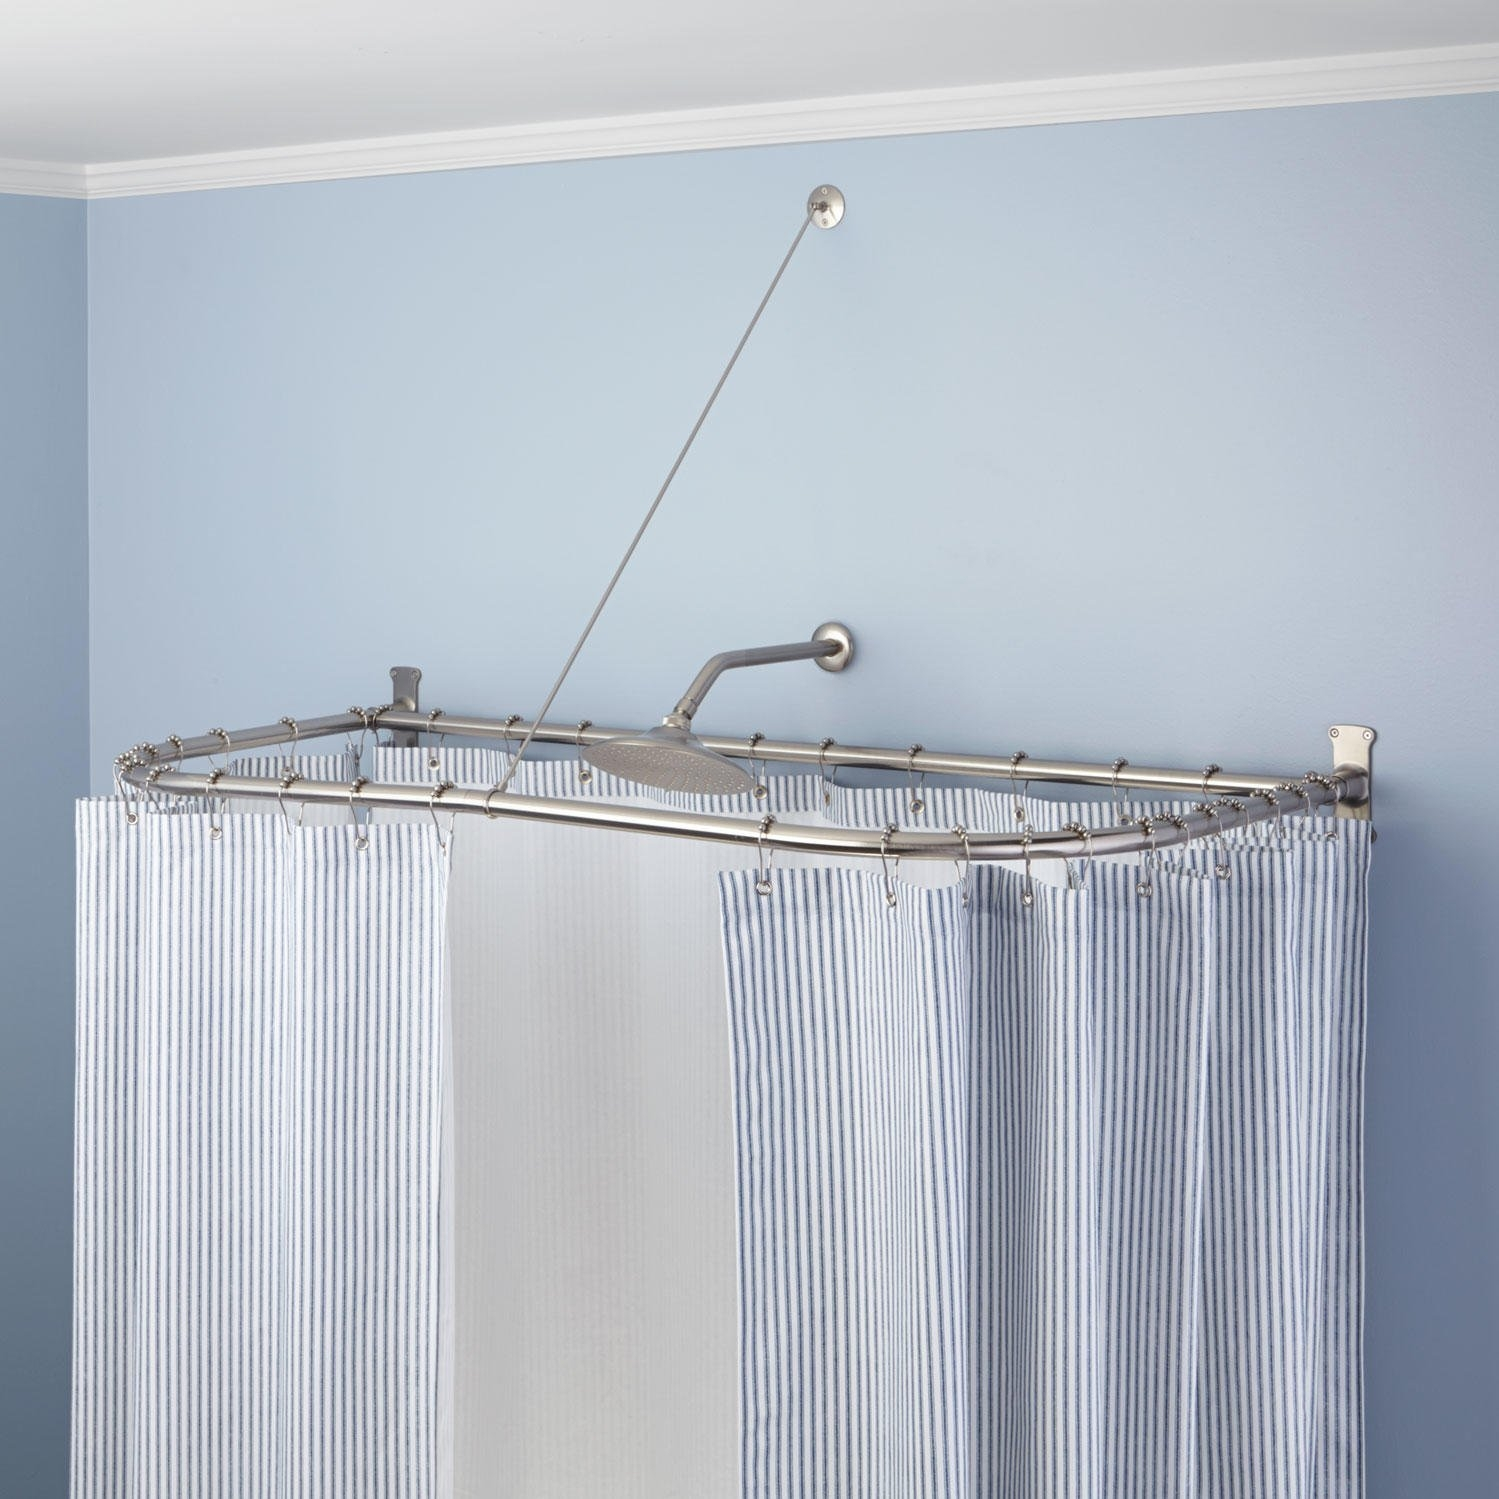 L Shaped Shower Curtain Rod Home Design John For L Shaped Shower Curtain Rods (Image 12 of 25)